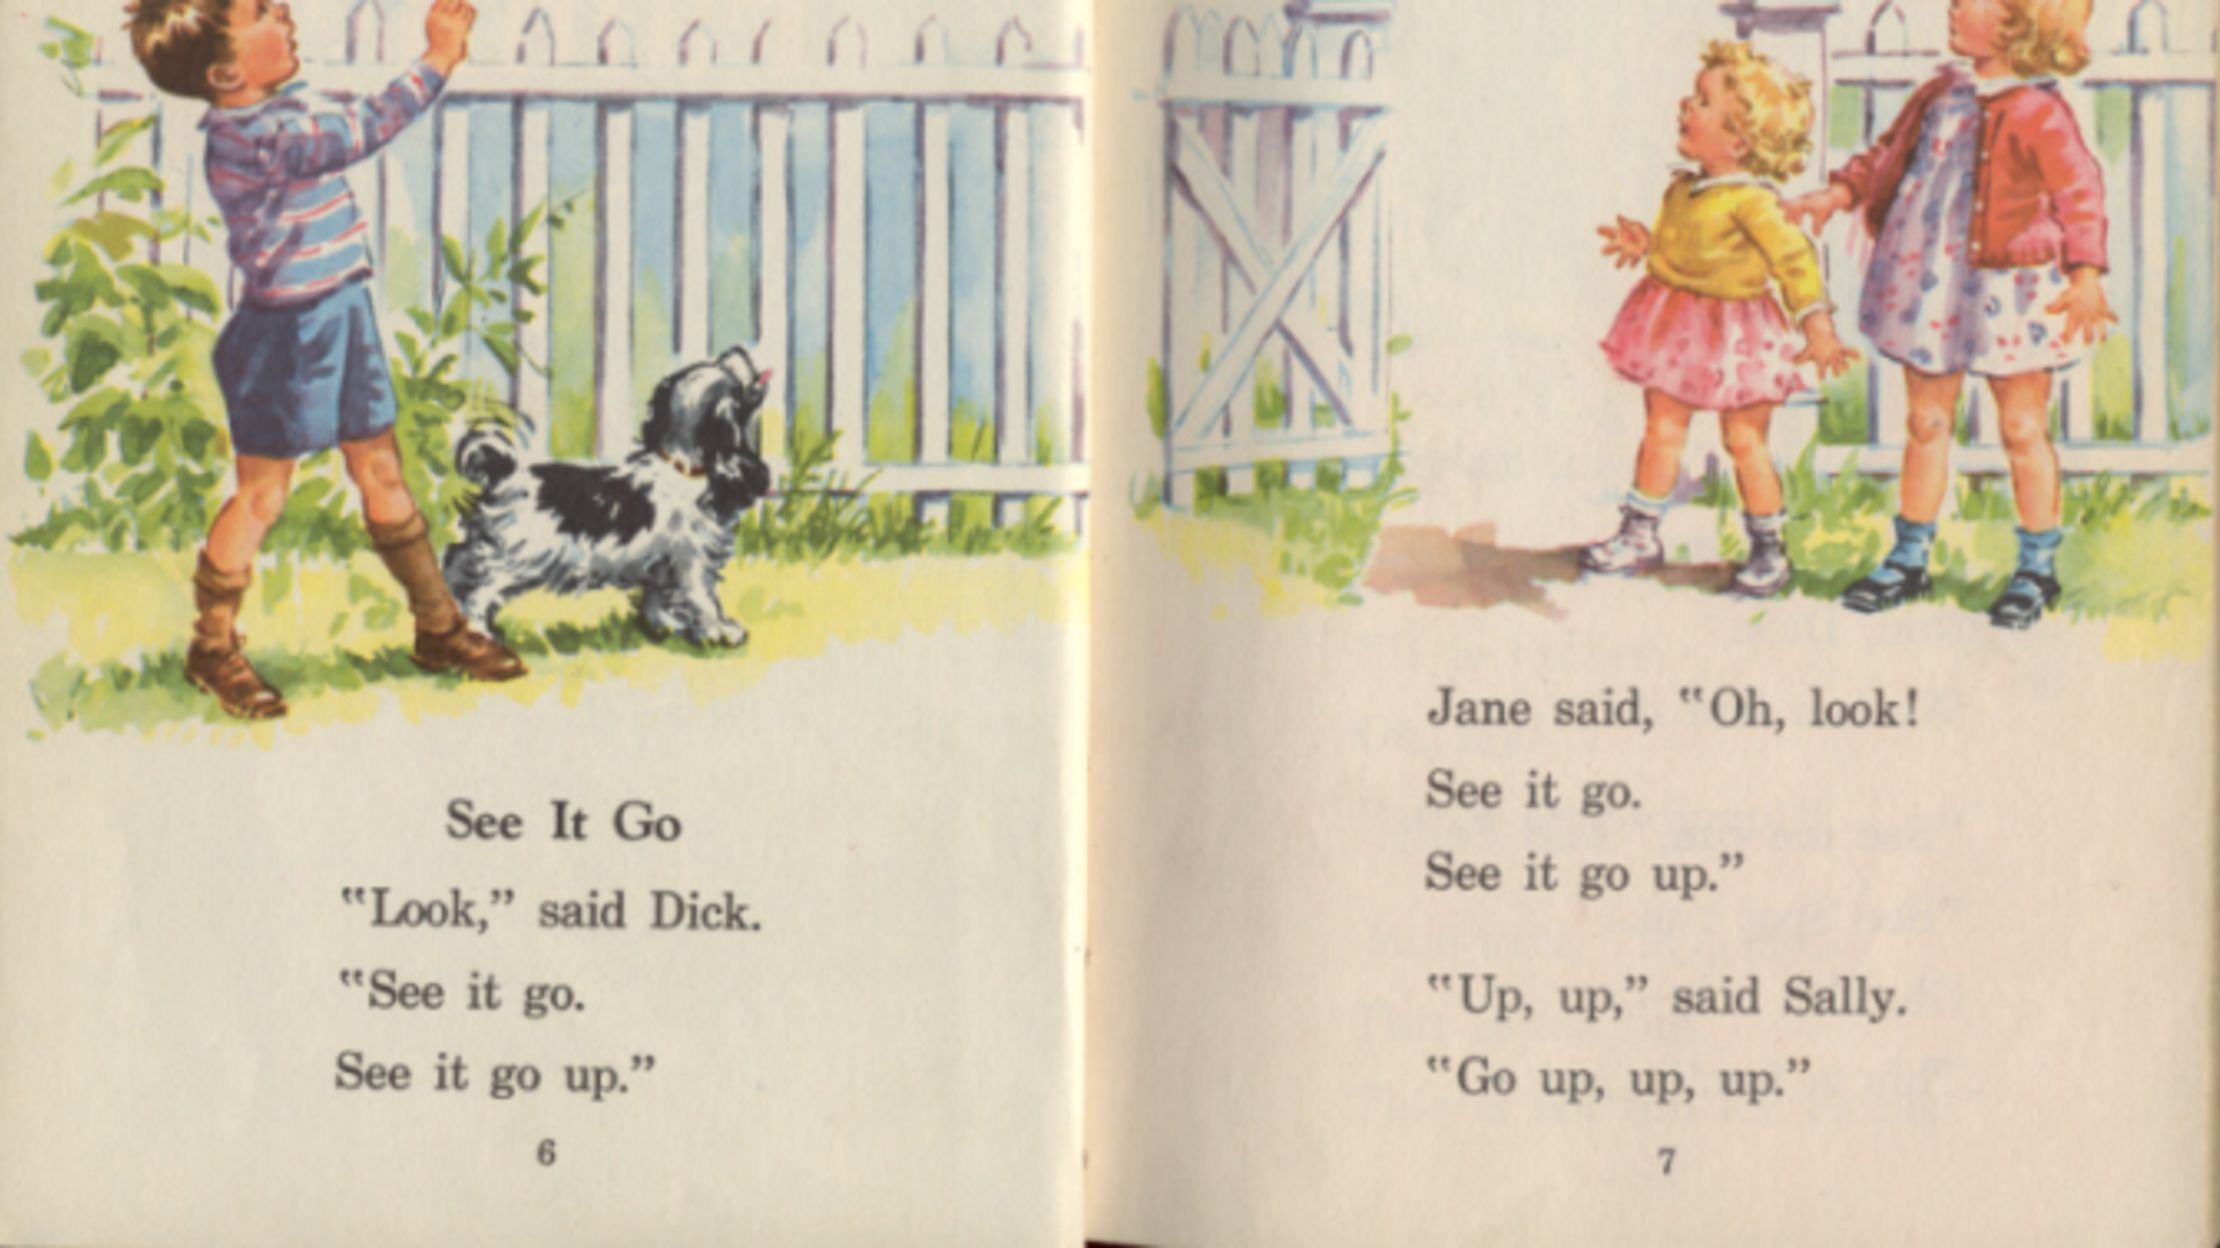 Fun with dick and jane synopsis